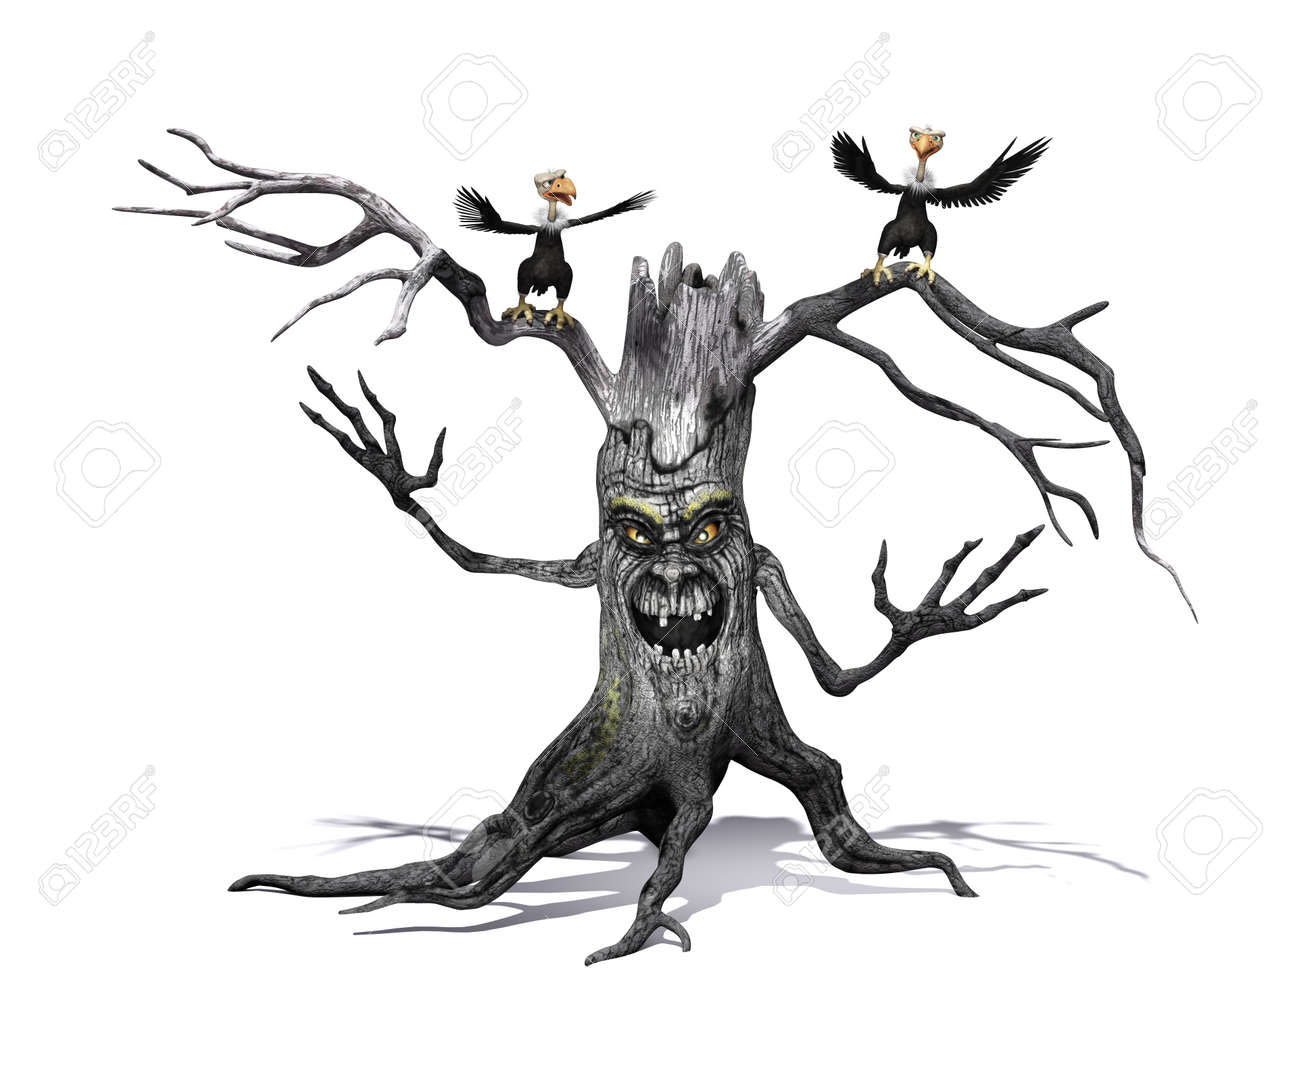 A Creepy Smiling Tree With Angry Cartoon Vultures 3d Render Stock Photo Picture And Royalty Free Image Image 67805746 » cartoon render with ibl is possible. a creepy smiling tree with angry cartoon vultures 3d render stock photo picture and royalty free image image 67805746